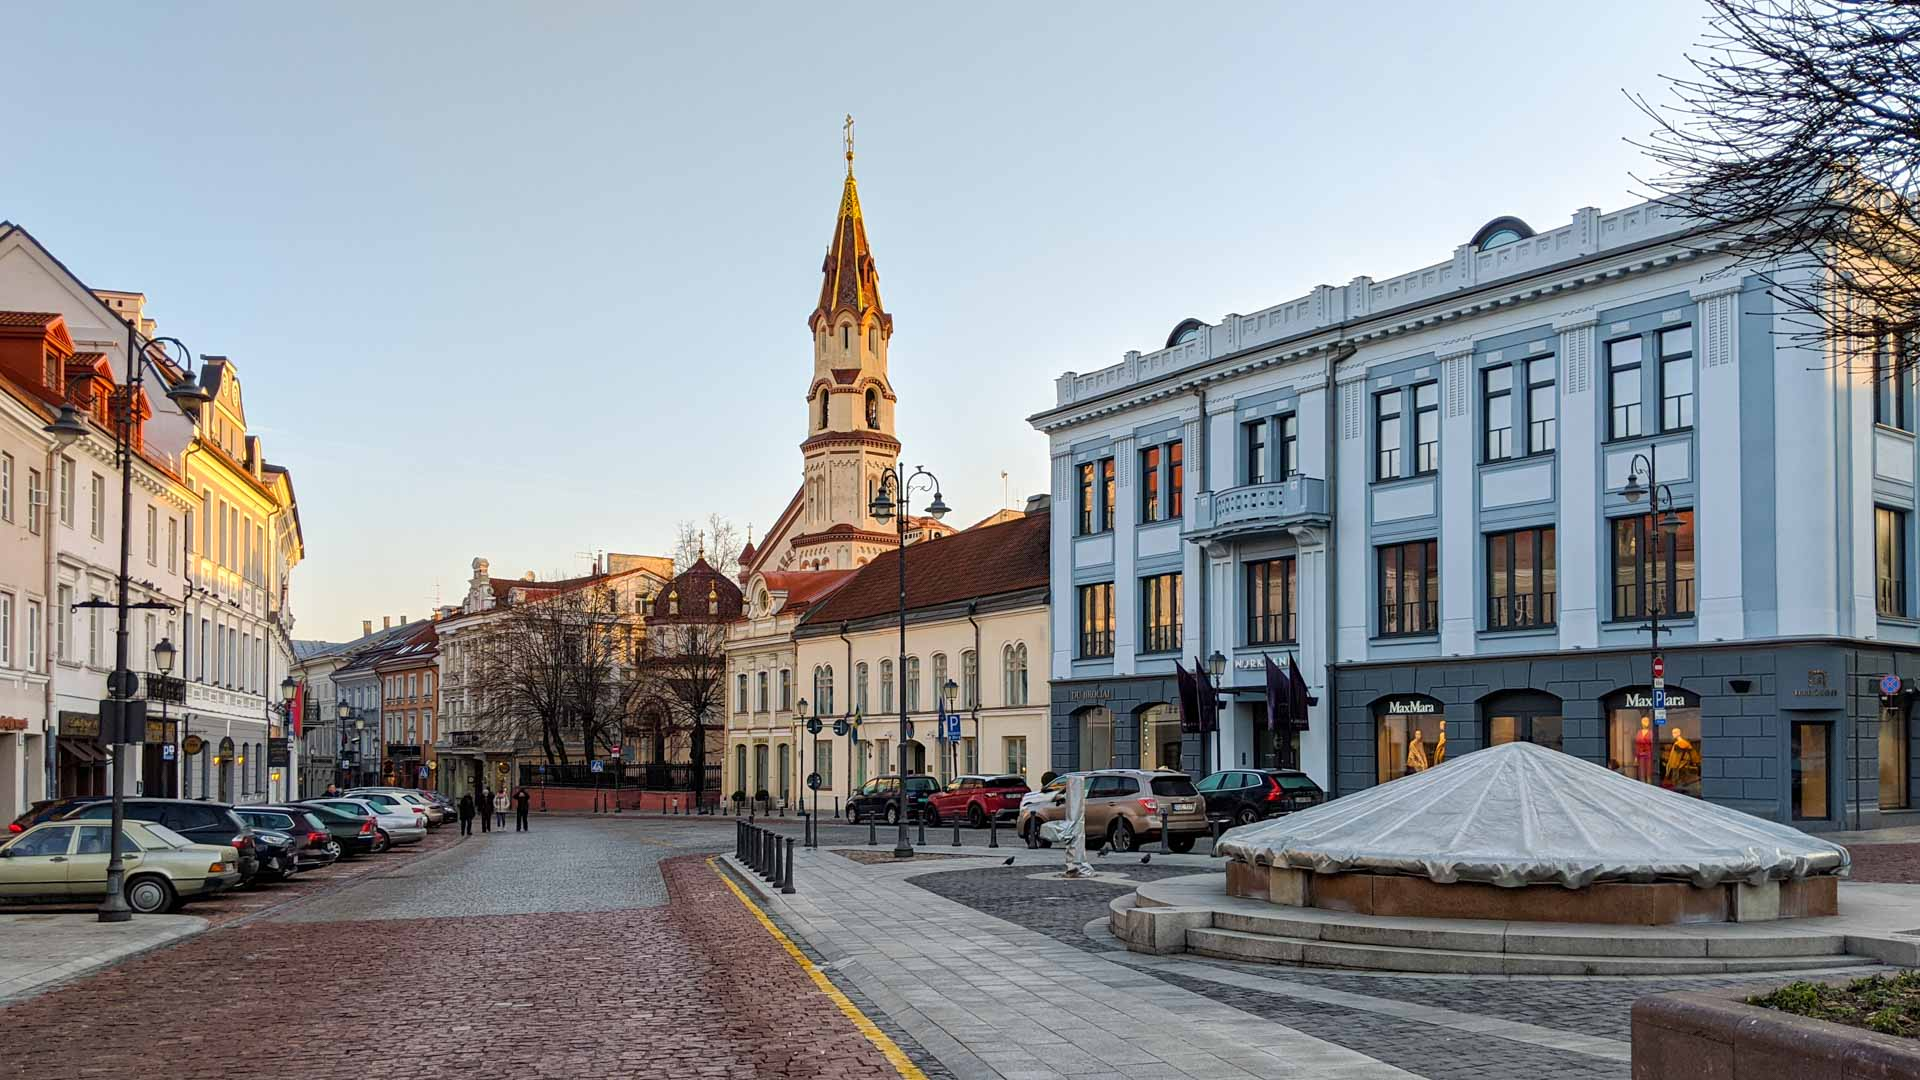 Town Hall Square in Vilnius